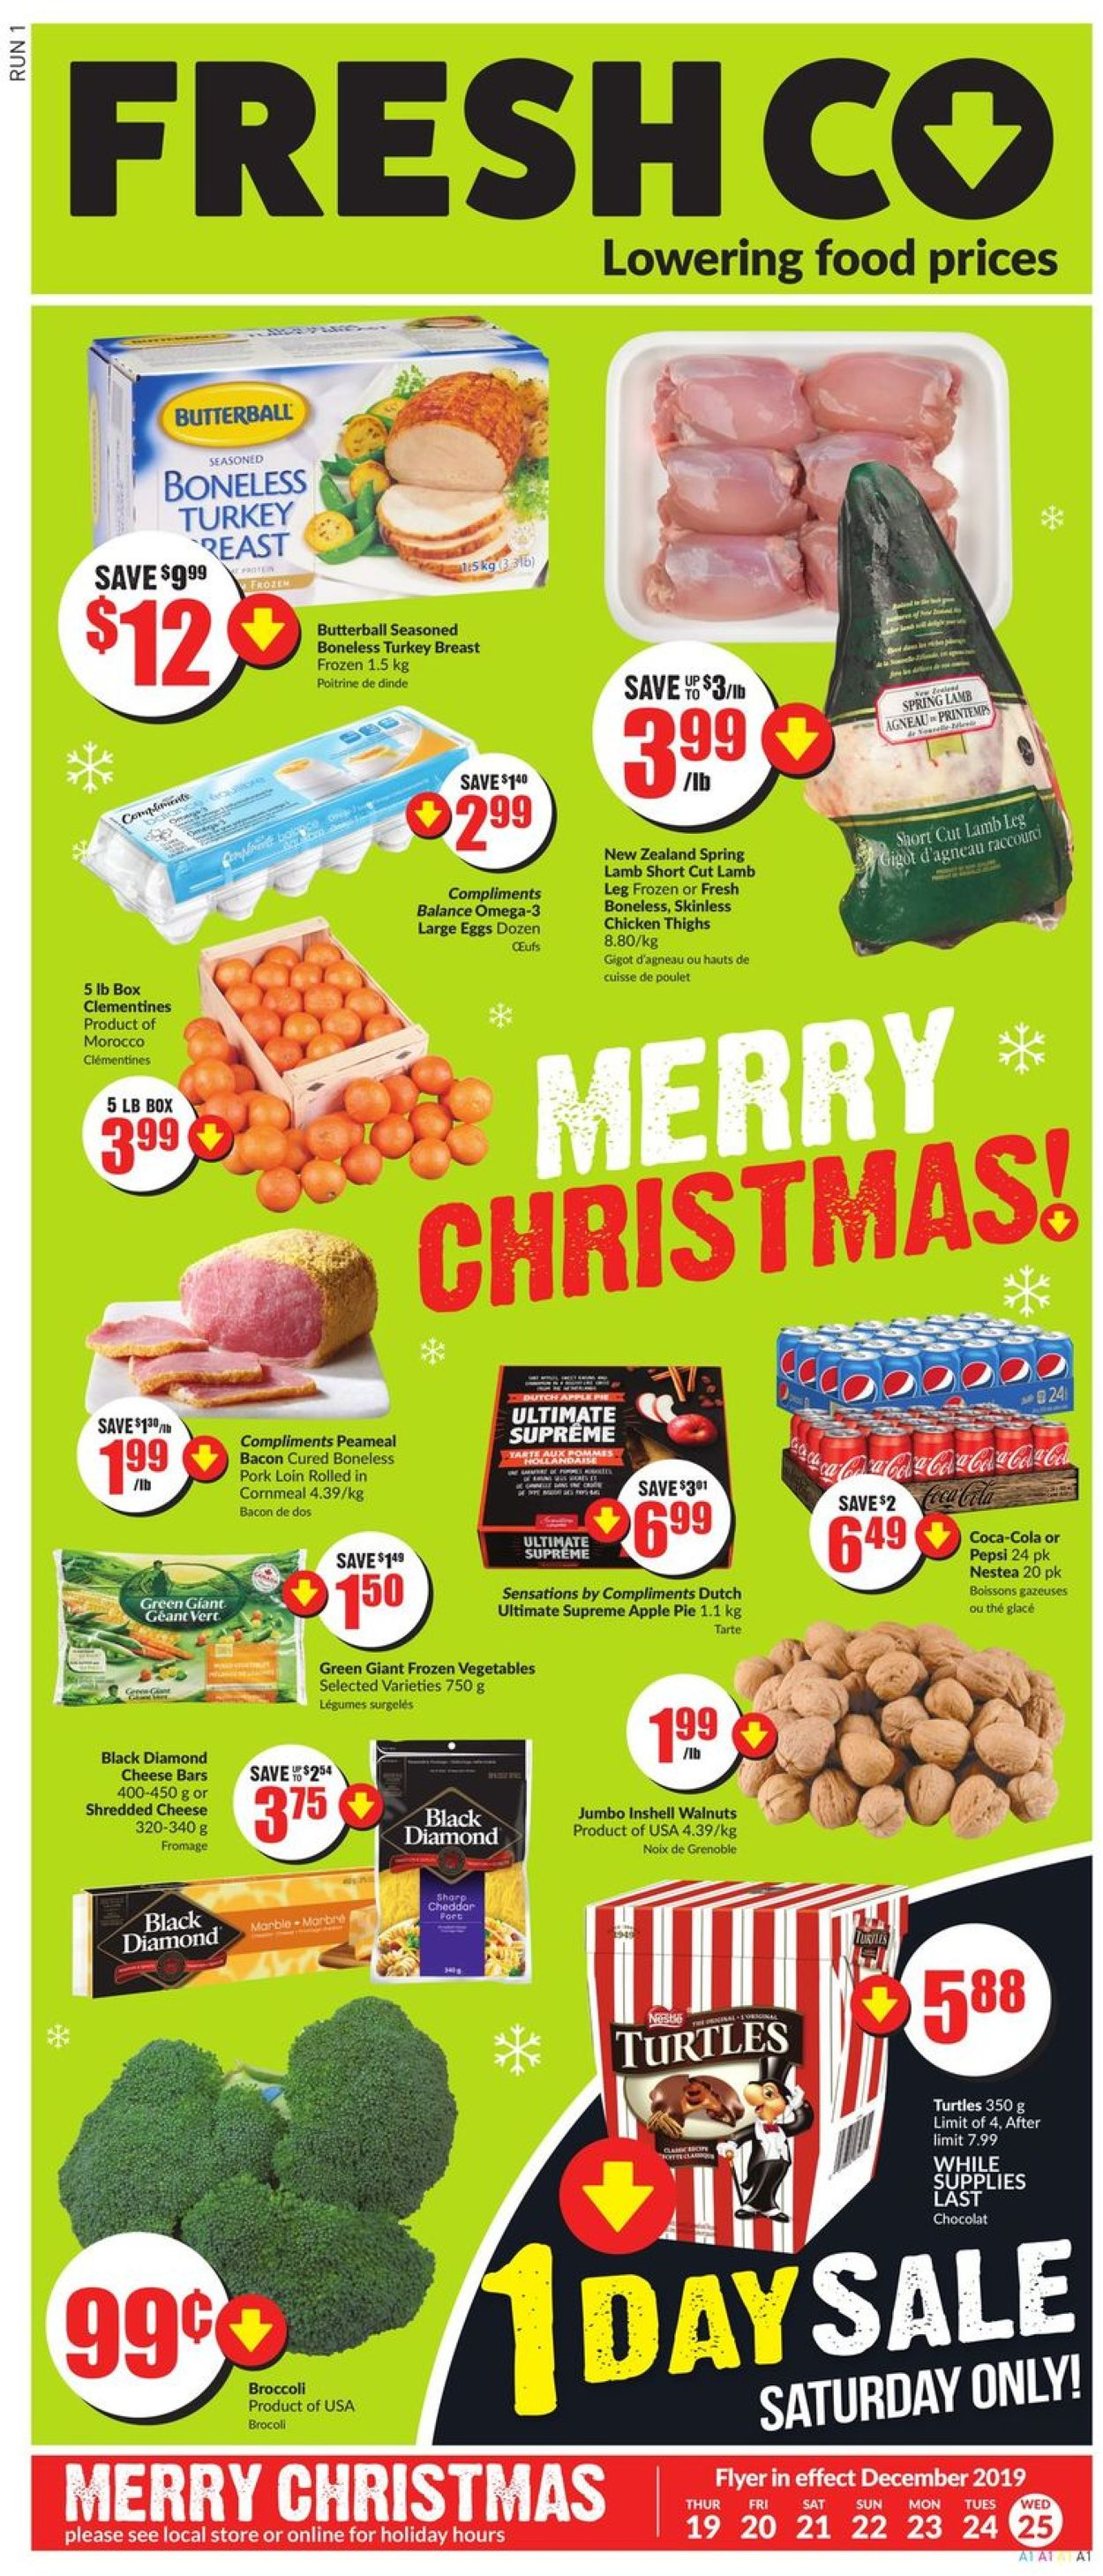 FreshCo. Christmas Flyer 2019